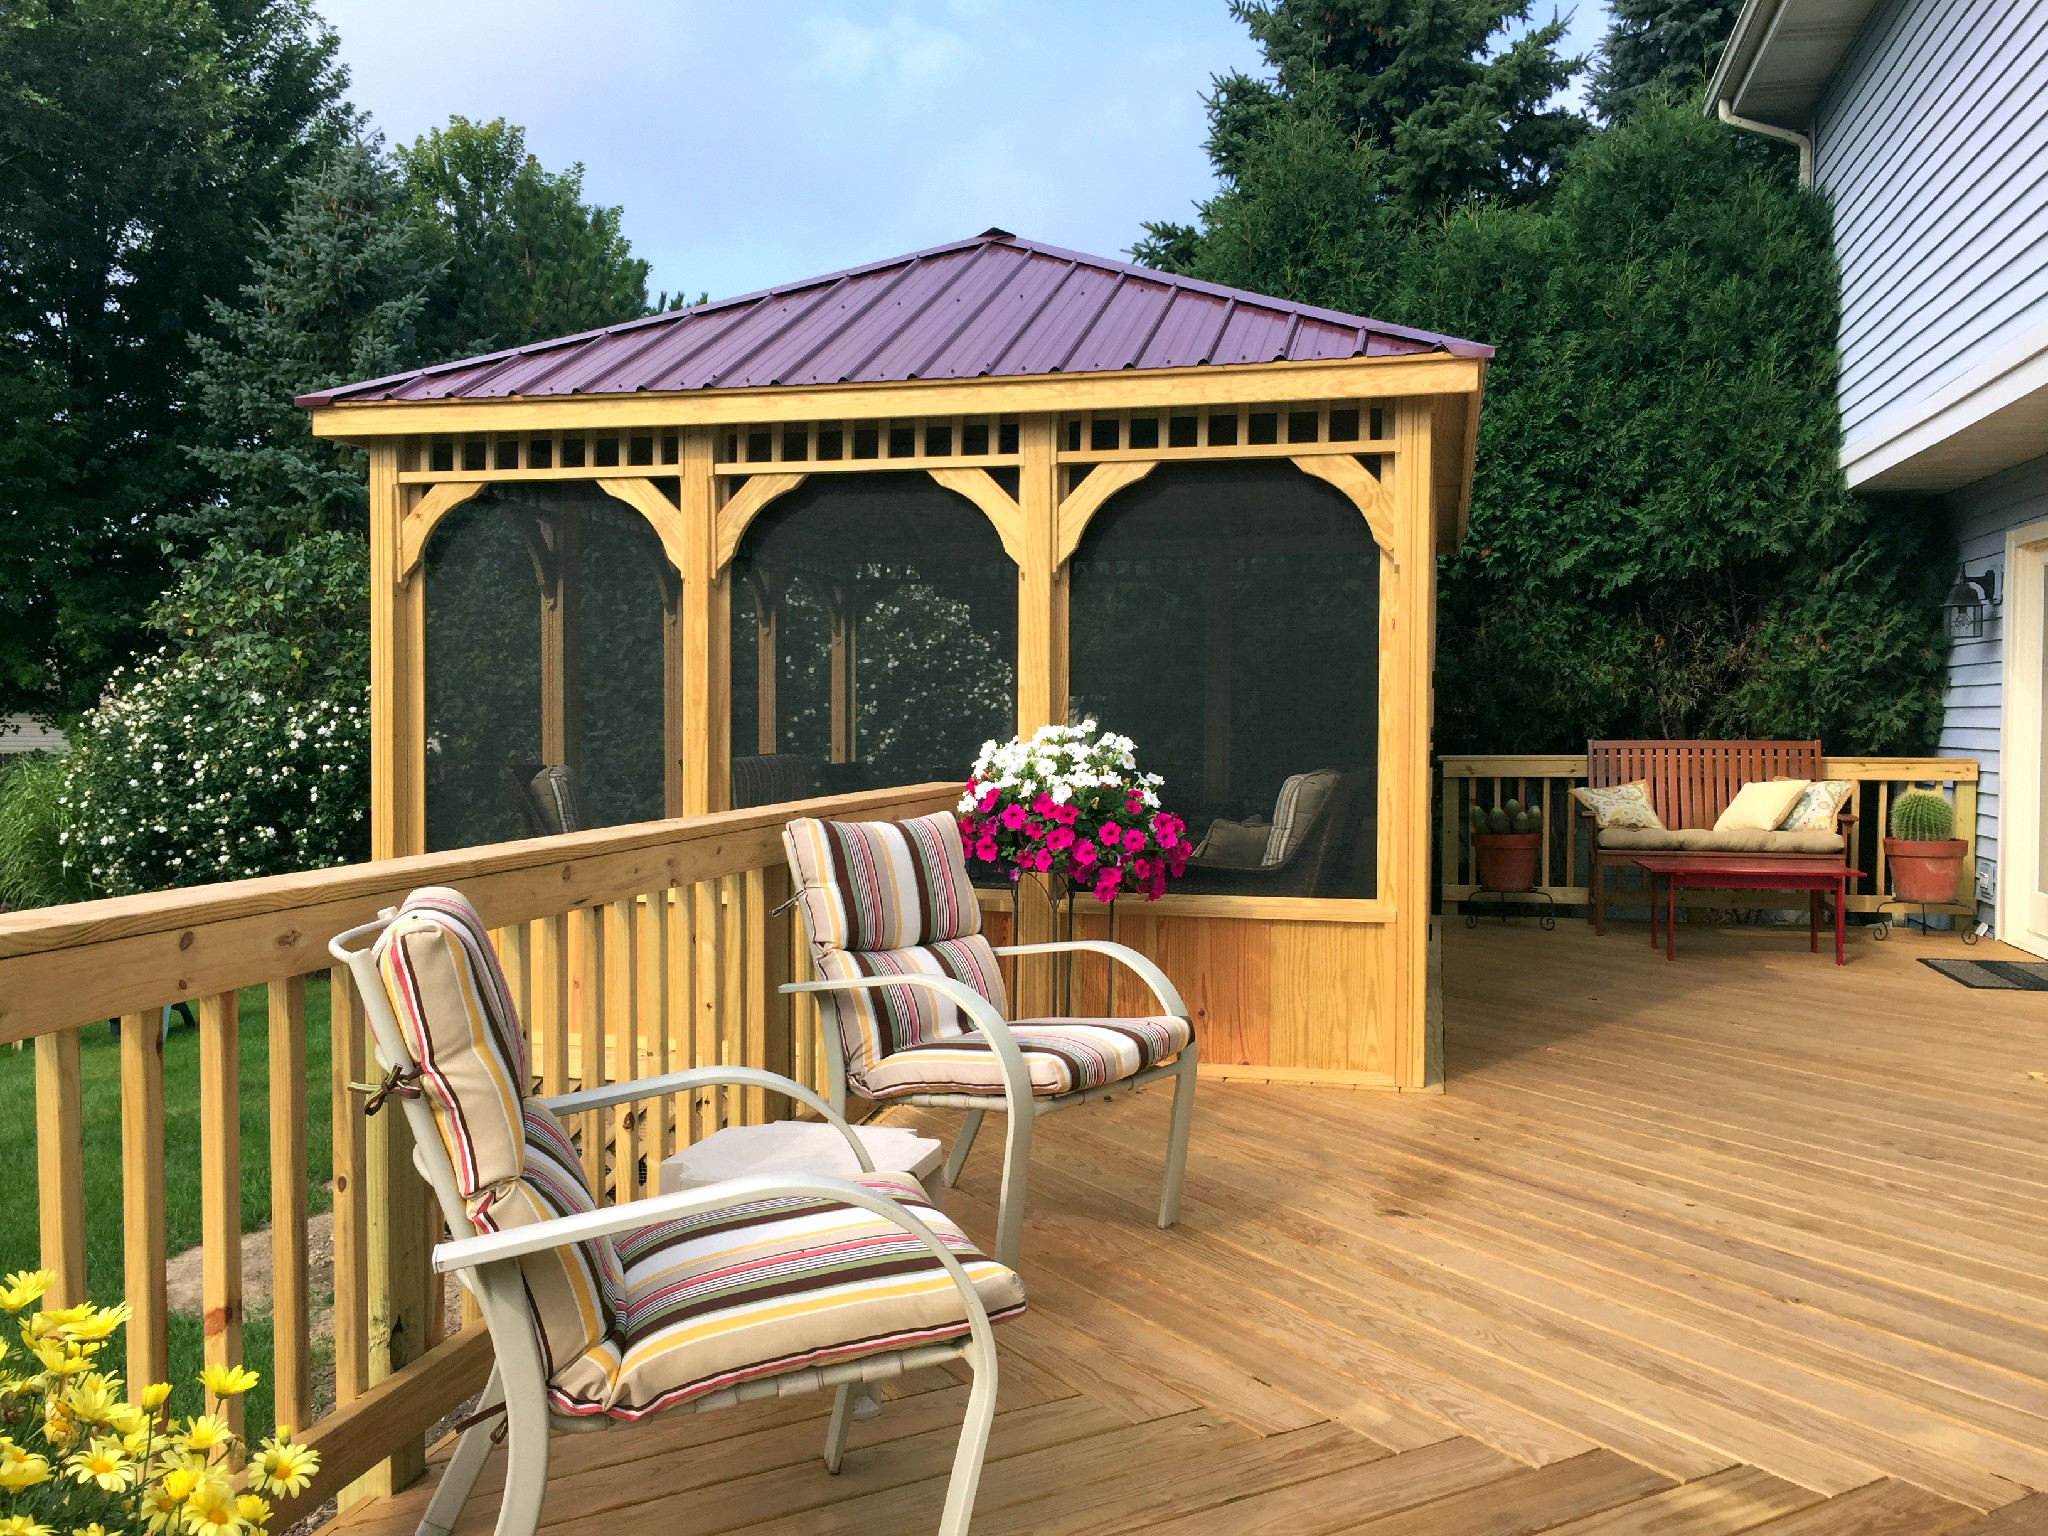 Gazebo Design Ideas by Archadeck | St. Louis decks, screened ...